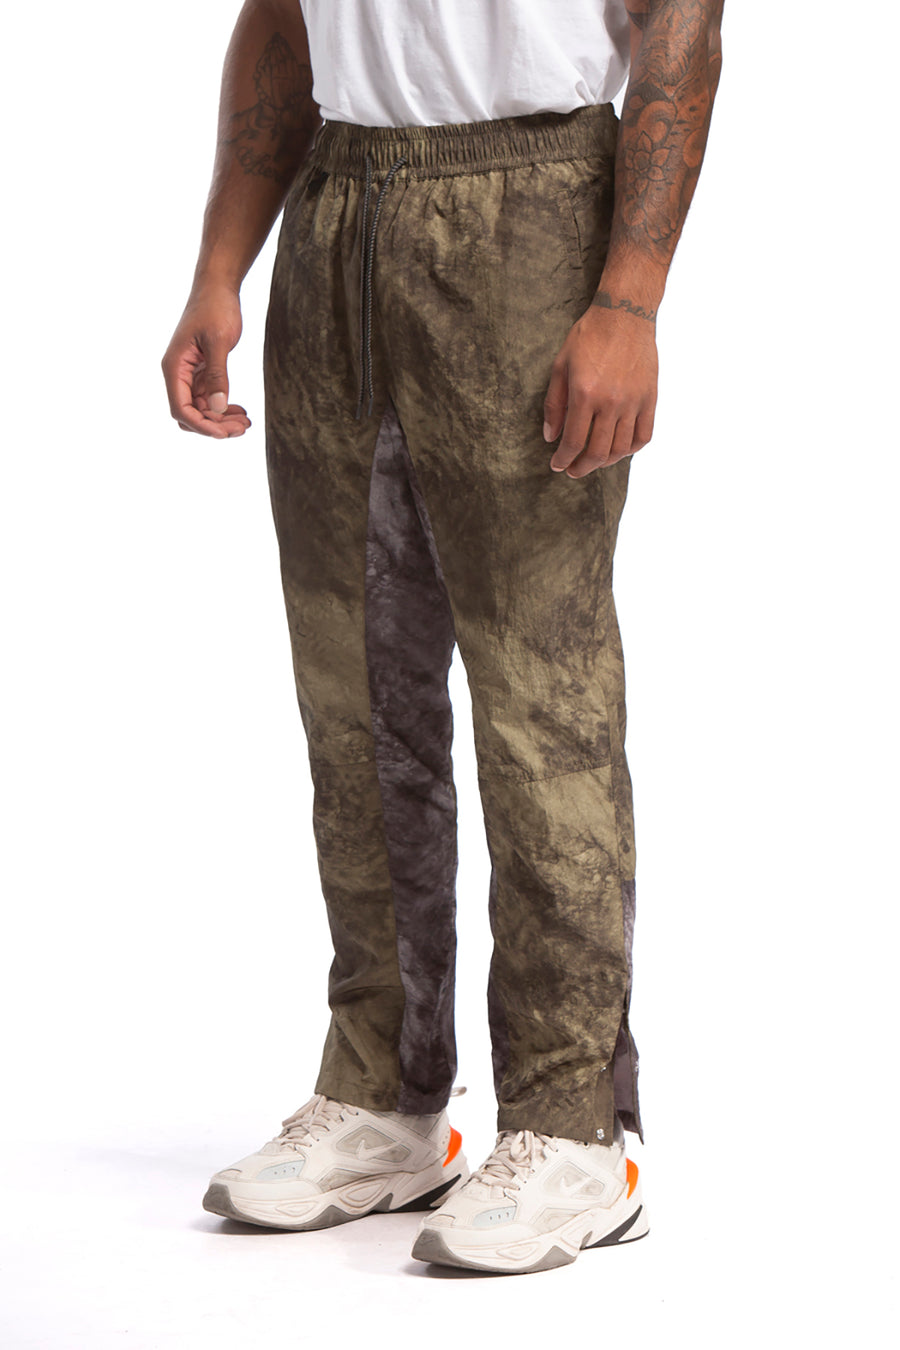 candorofficial - Grath Pant, Green Shadow Camo - Bottoms